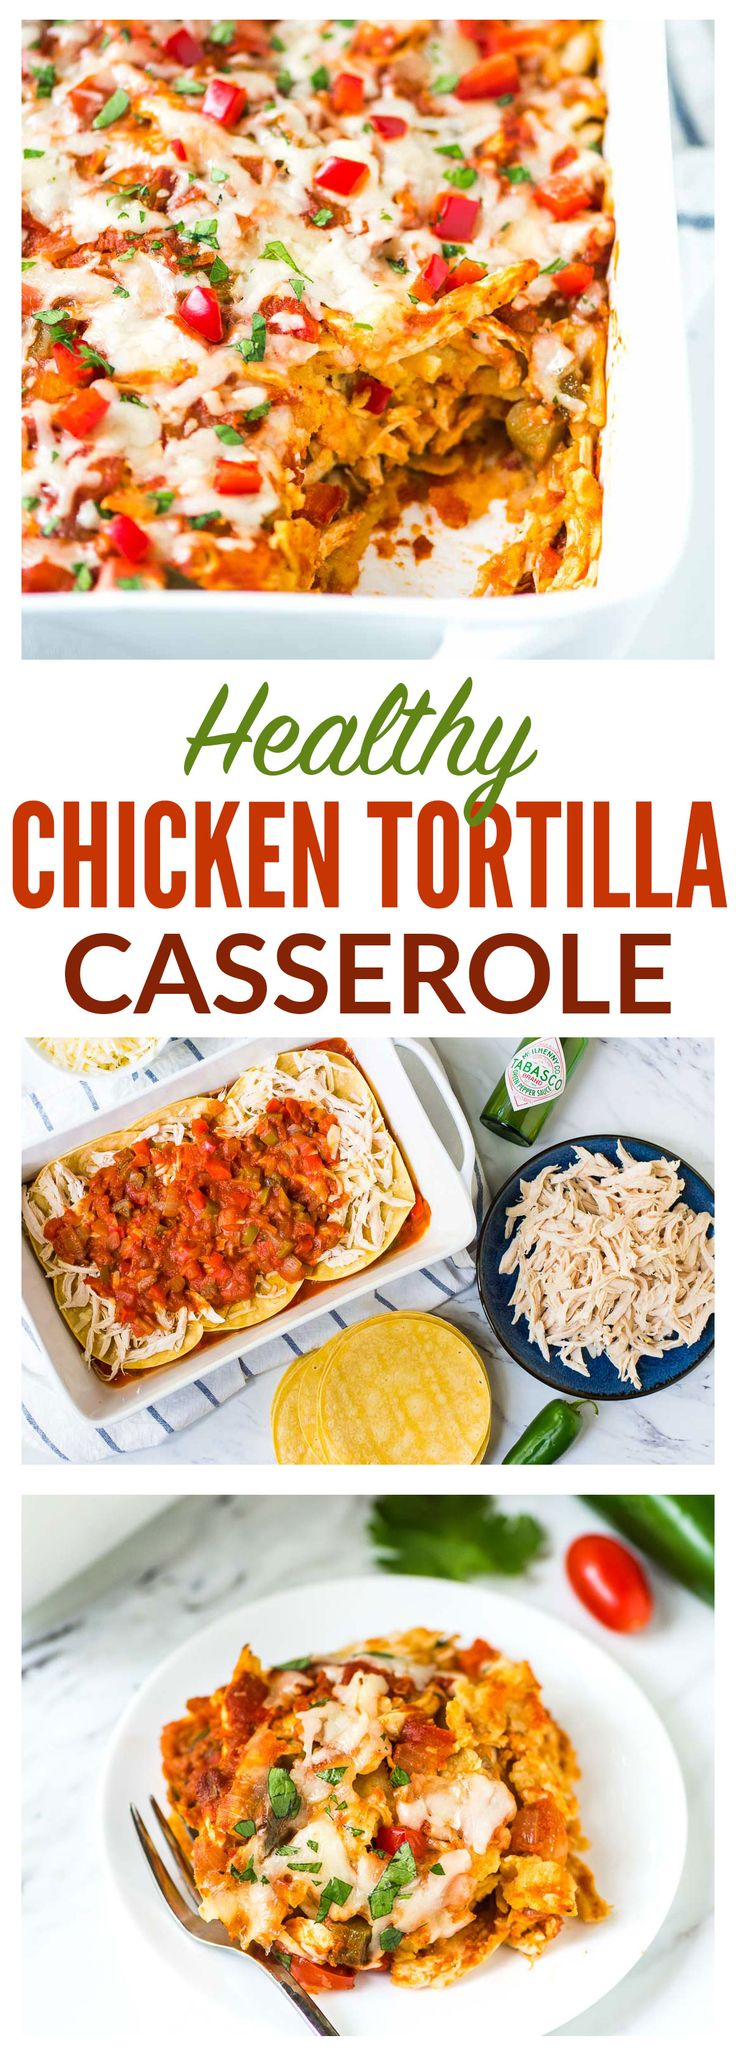 Easy Mexican Chicken Tortilla Casserole. Family favorite! Layers of cheese, chicken, and tortillas, baked in a southwest tomato sauce. Freezer-friendly and healthy! @wellplated (Baking Pasta For A Crowd)